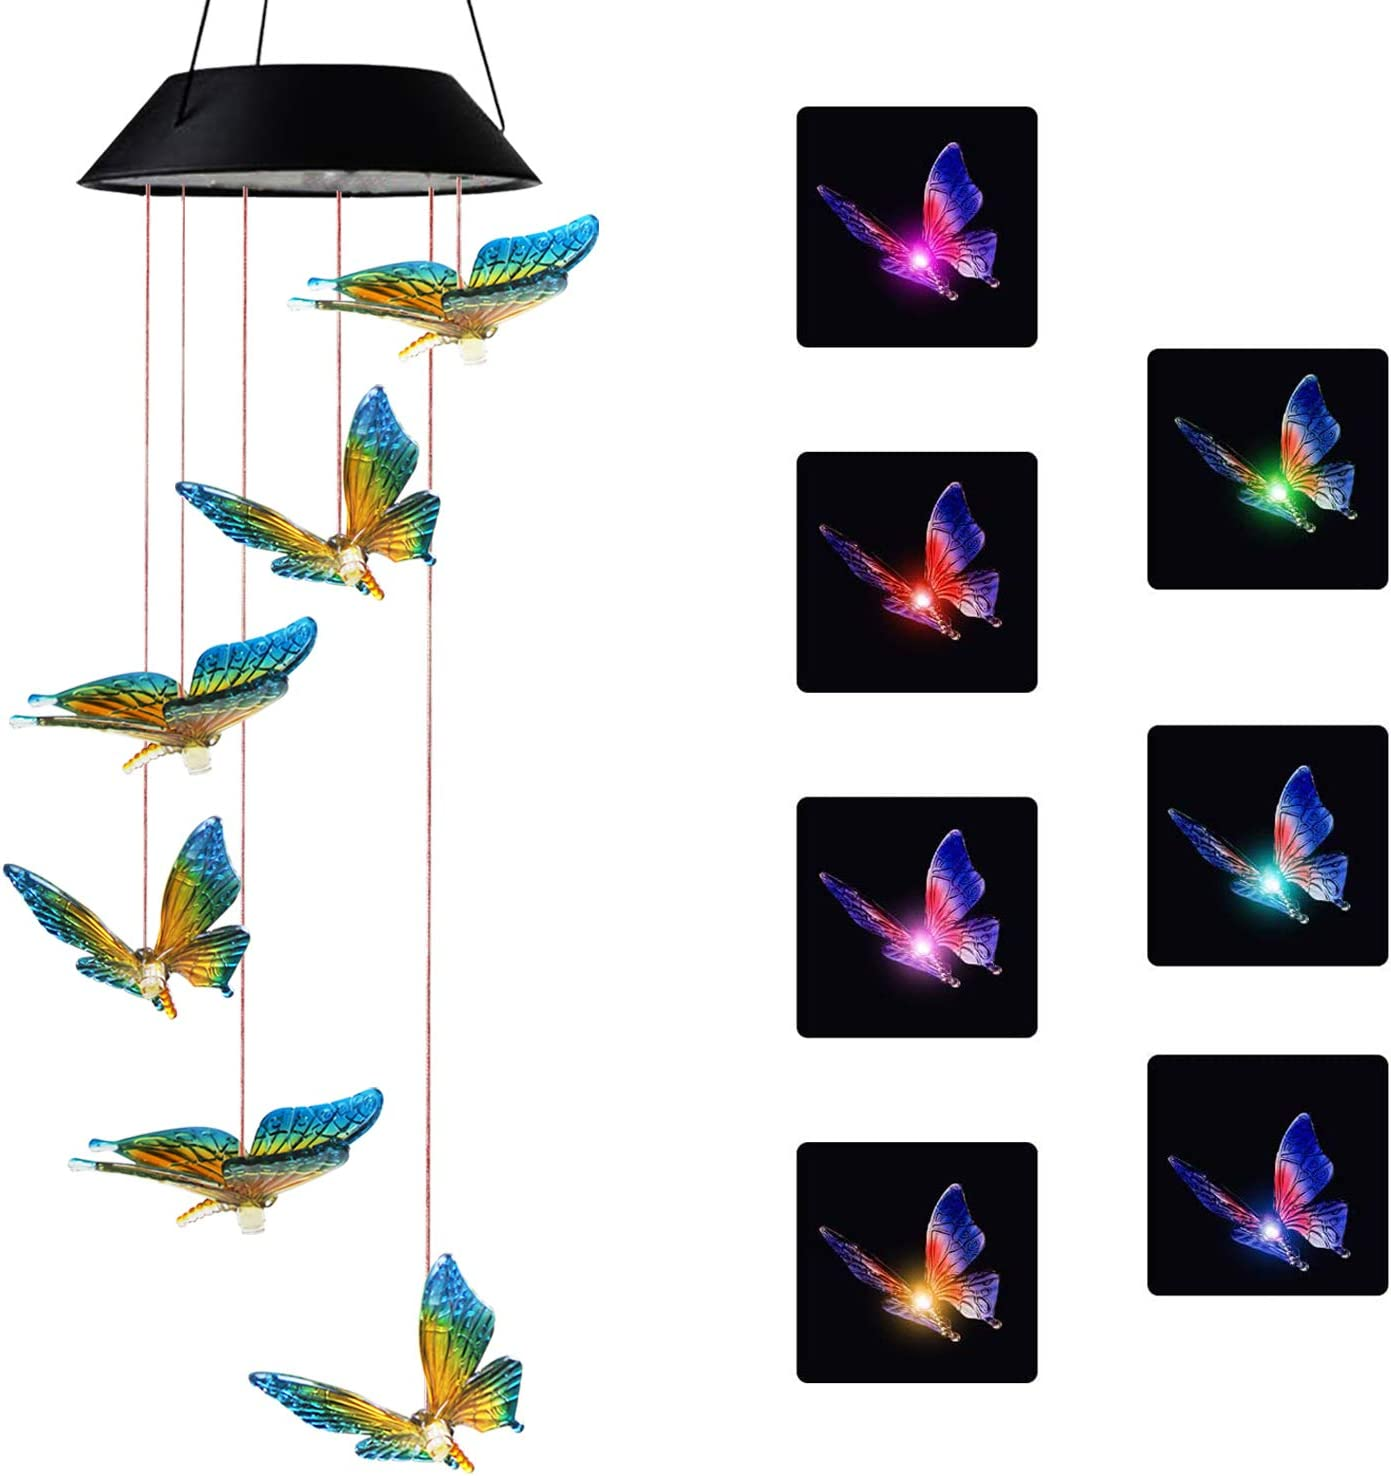 X-PREK Solar Butterfly Wind Chimes for Outside, Gifts for Mom Color-Changing Hanging Mobile Wind Chime Outdoor Waterproof LED Solar Light Porch Deck Garden Patio Decor (Blue Butterfly)